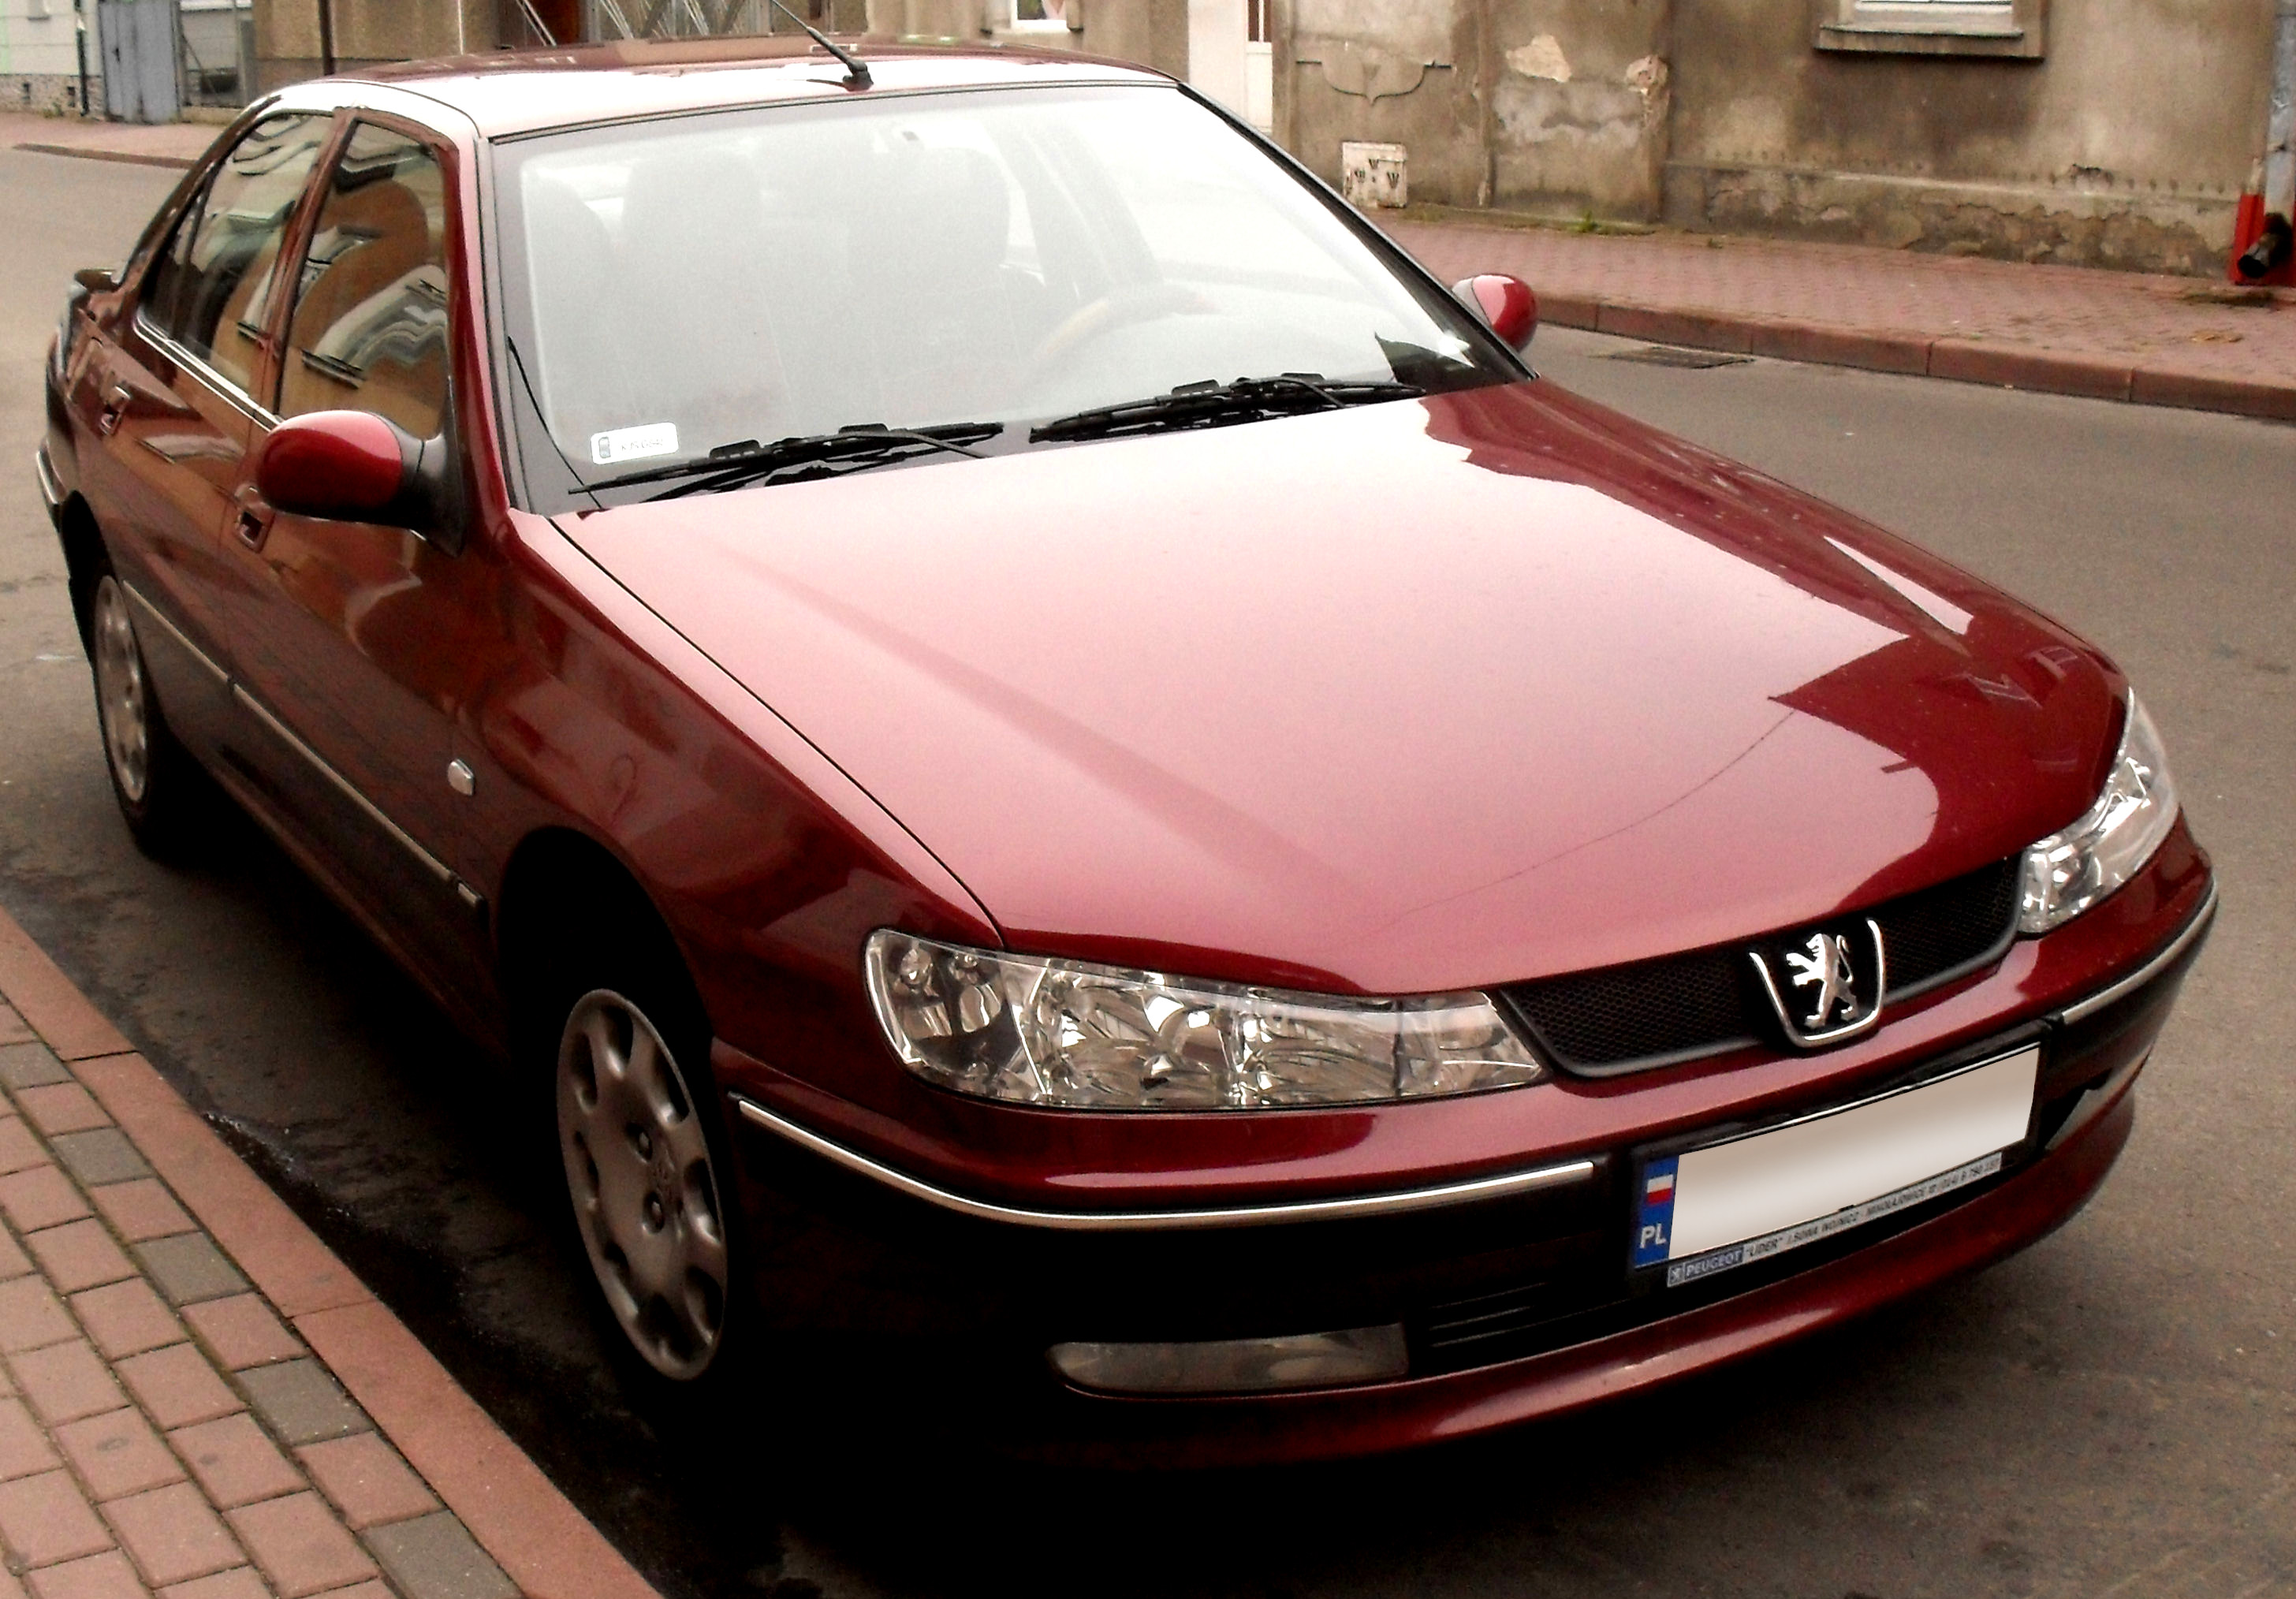 Peugeot 406 break 8 2 2 hdi 133 hp - Peugeot 406 coupe 2 2 hdi ...